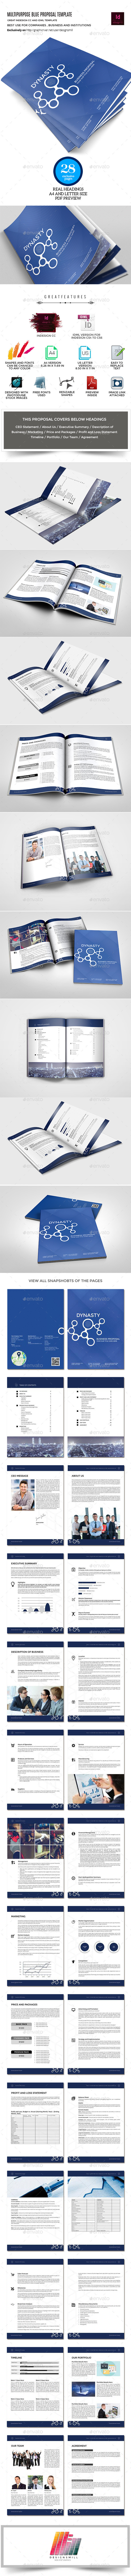 Dynasty Blue Business Proposal Templates - Proposals & Invoices Stationery